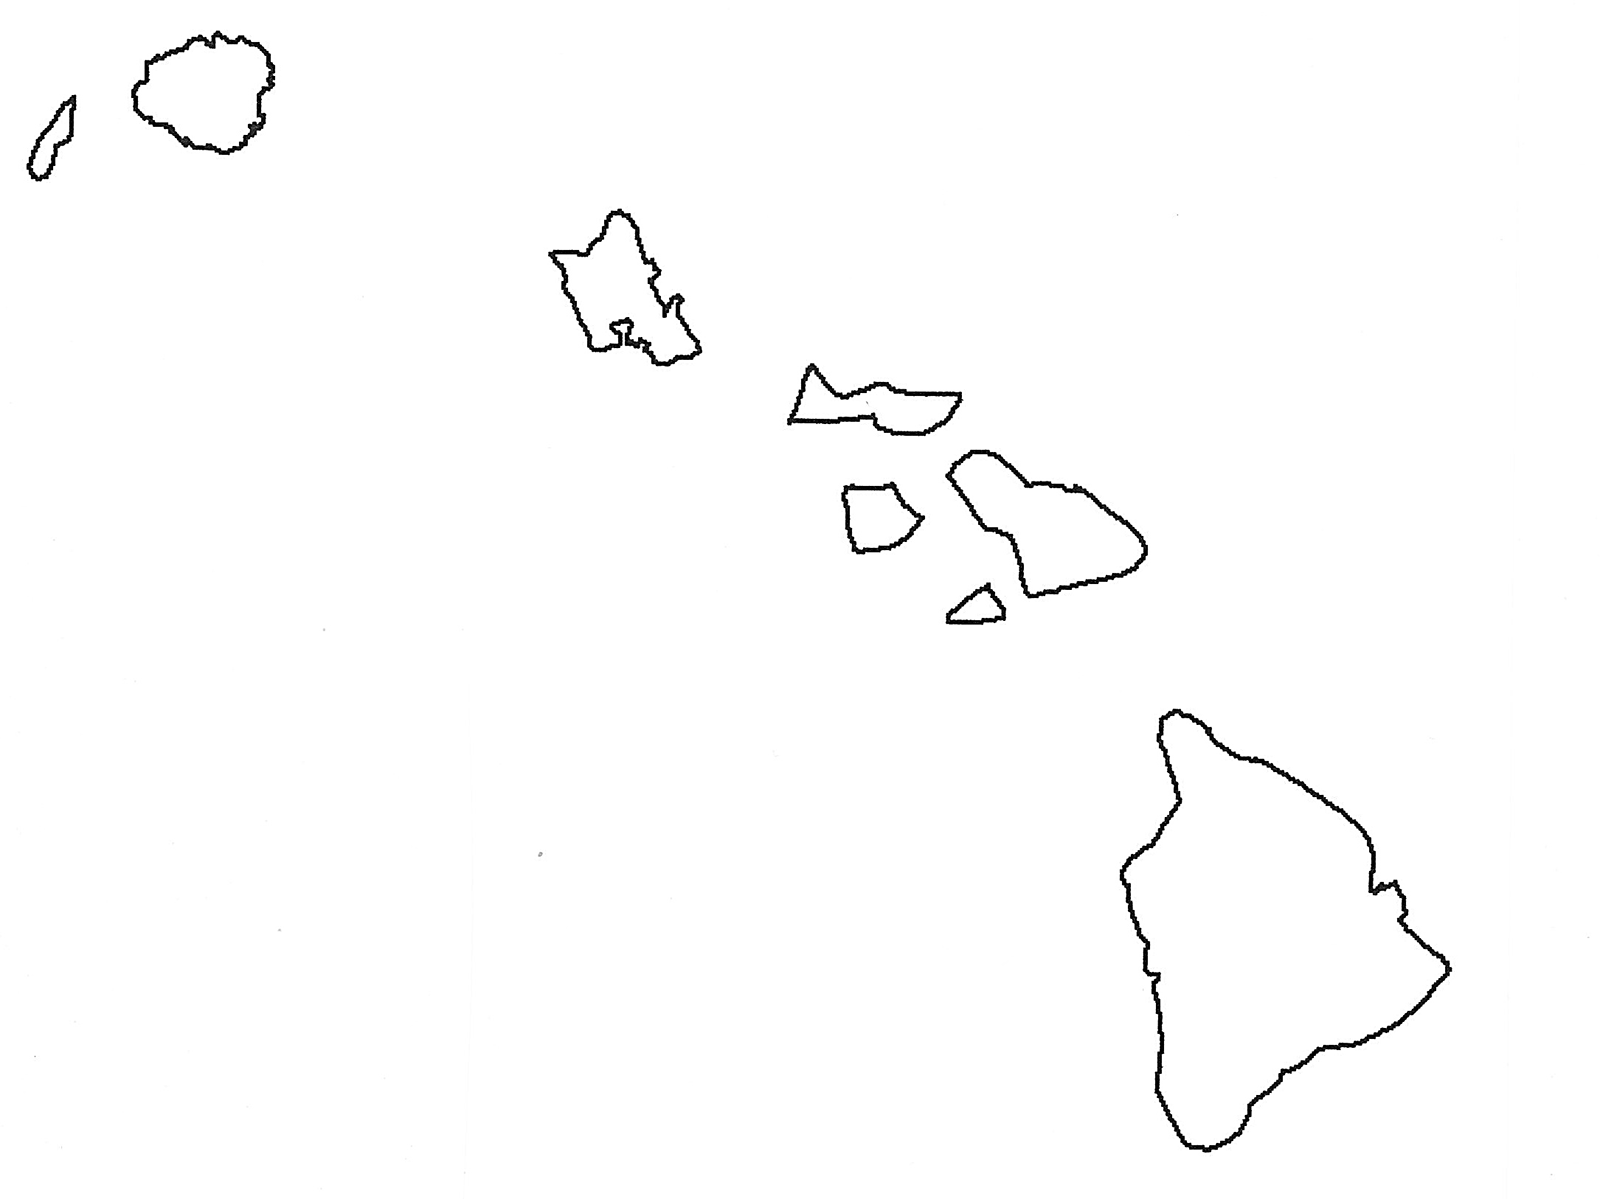 outline-map-of-hawaiian-islands-with-hawaii-map - SECURITY ... on map of the grand canyon, map of arizona, map of michigan, map of philippines, map of hawaiian islands, map of americas, map of cleveland, map of north carolina, map of usa, map of illinois, map of waikiki, map of mexico, map of pearl harbor, map of italy, map of oahu, map of guam, map of florida, map of massachusetts, map of the panama canal, map of maine, map of texas, map of molokai, map of new jersey, map of maui, map of virginia, map of alaska, map of china, map of bahamas, map of kauai, map of canada, google maps hawaii, map of mauna loa, map of ohio, map of united states, map of georgia, map of delaware, map of new york, map of big island, map of california,